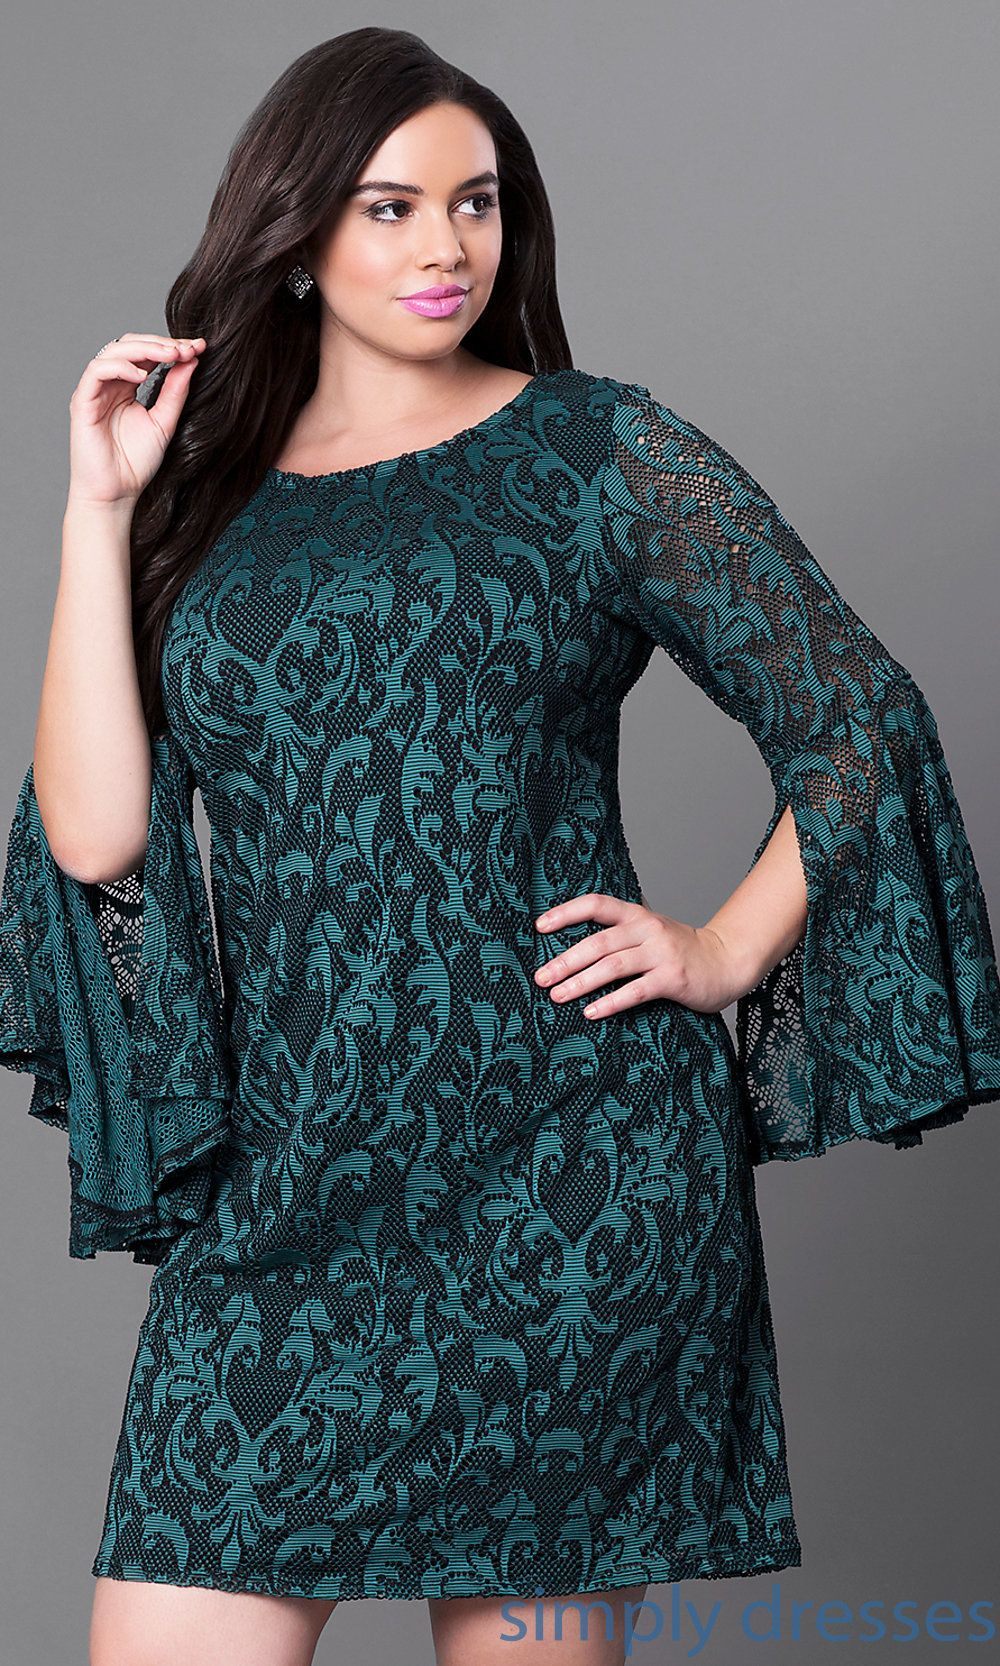 Juti short green lace plussize party dress with sleeves